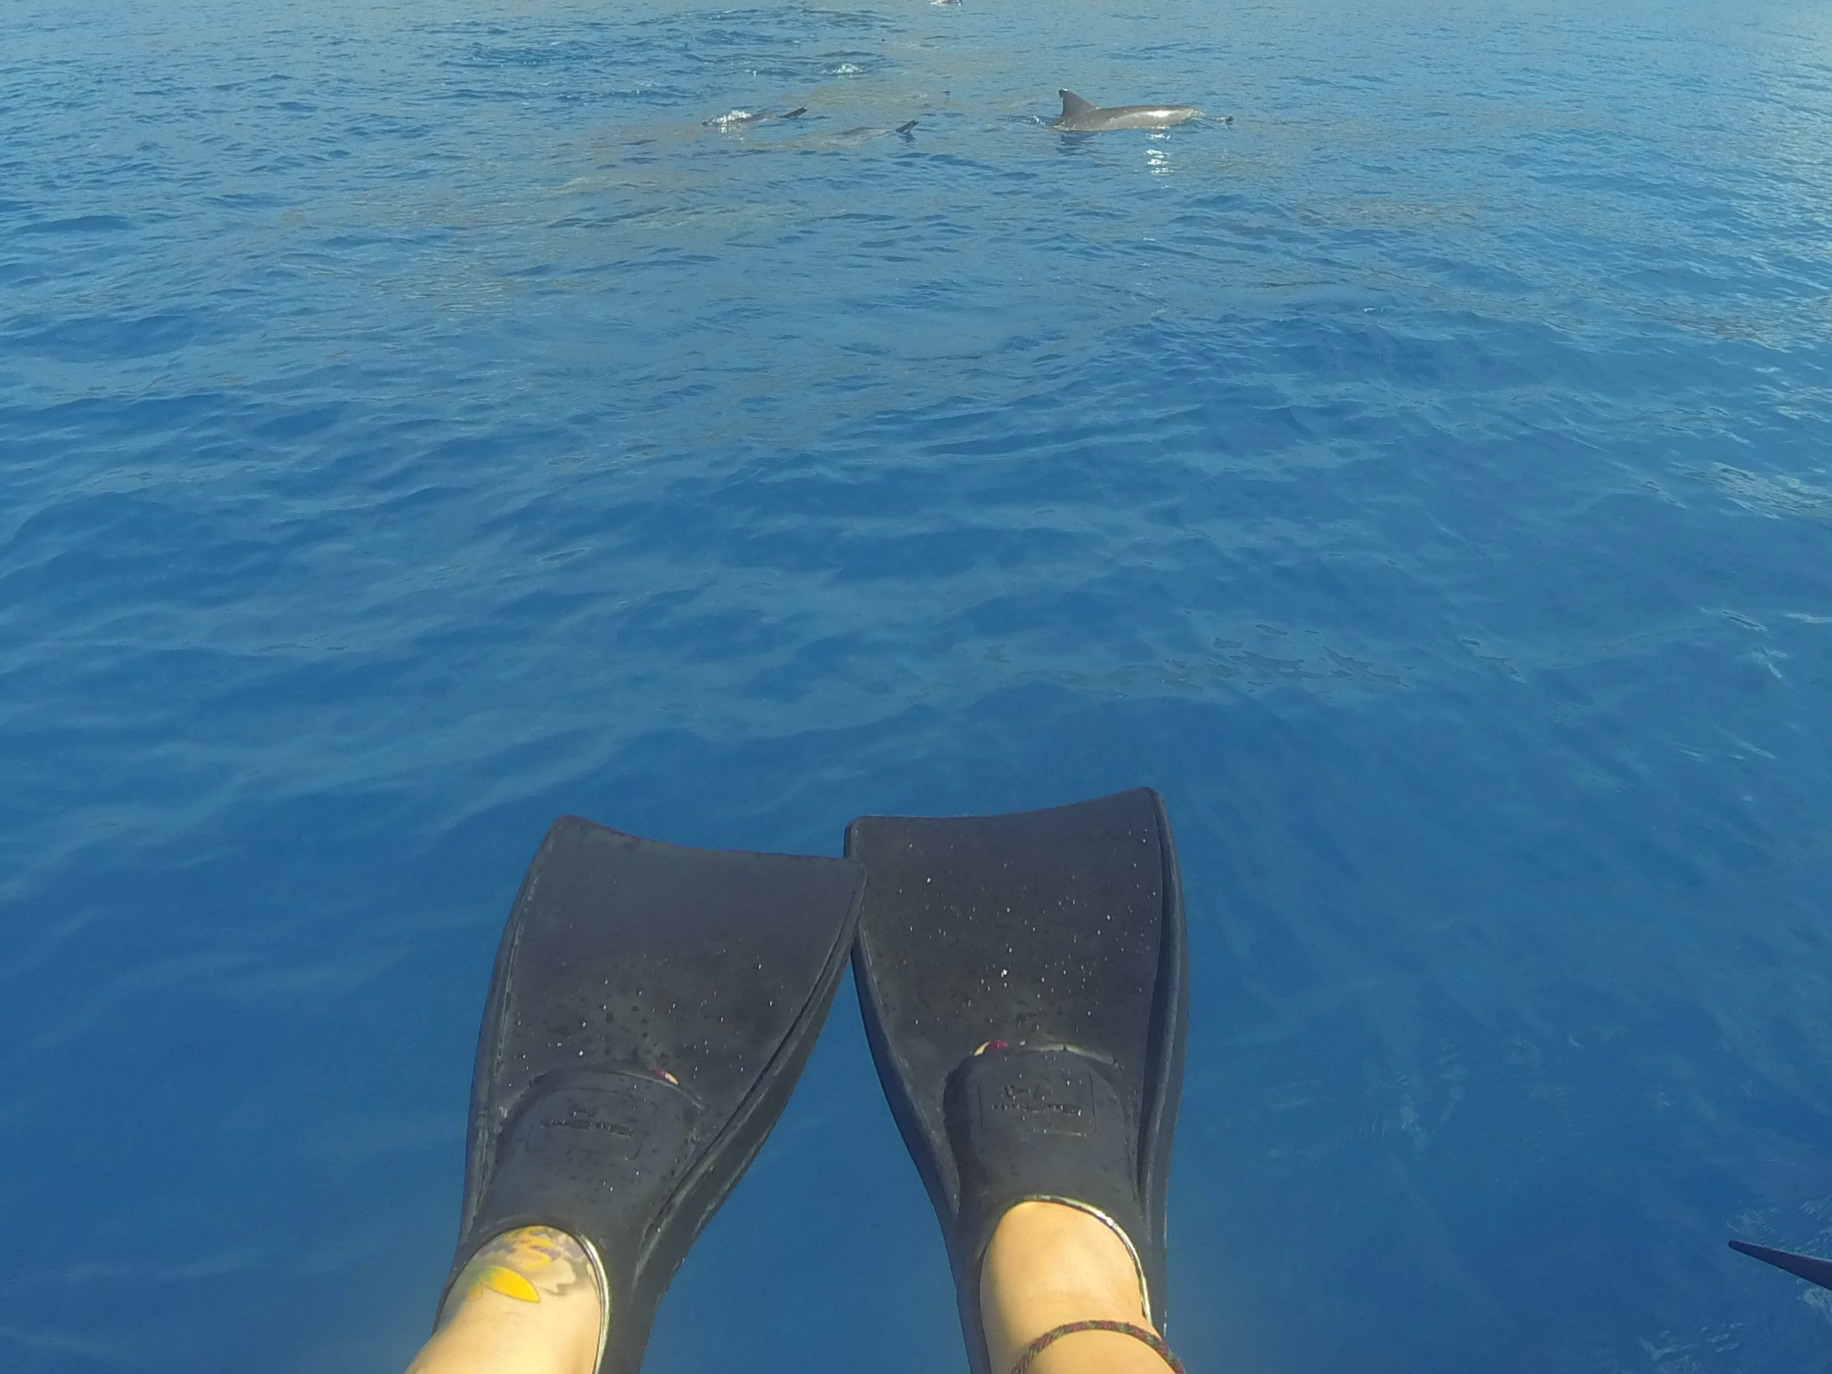 dolphin excursion Hawaii. Swim with dolphins hawaii